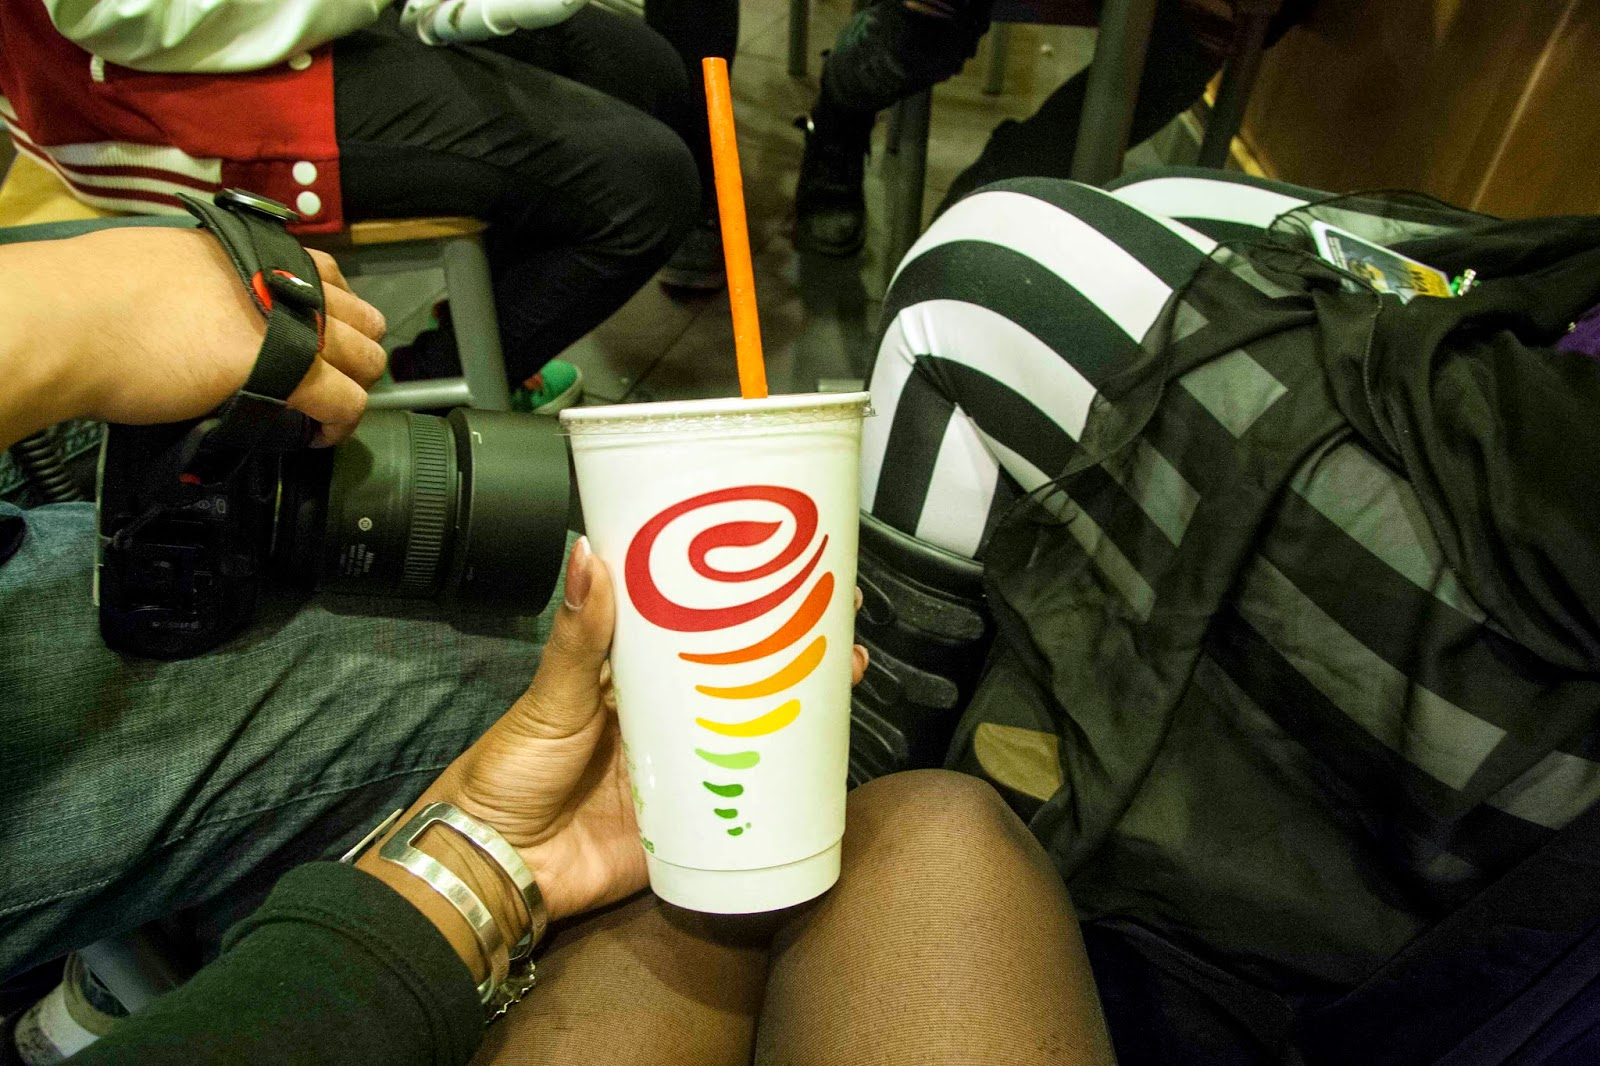 Jamba Juice, one of my faves